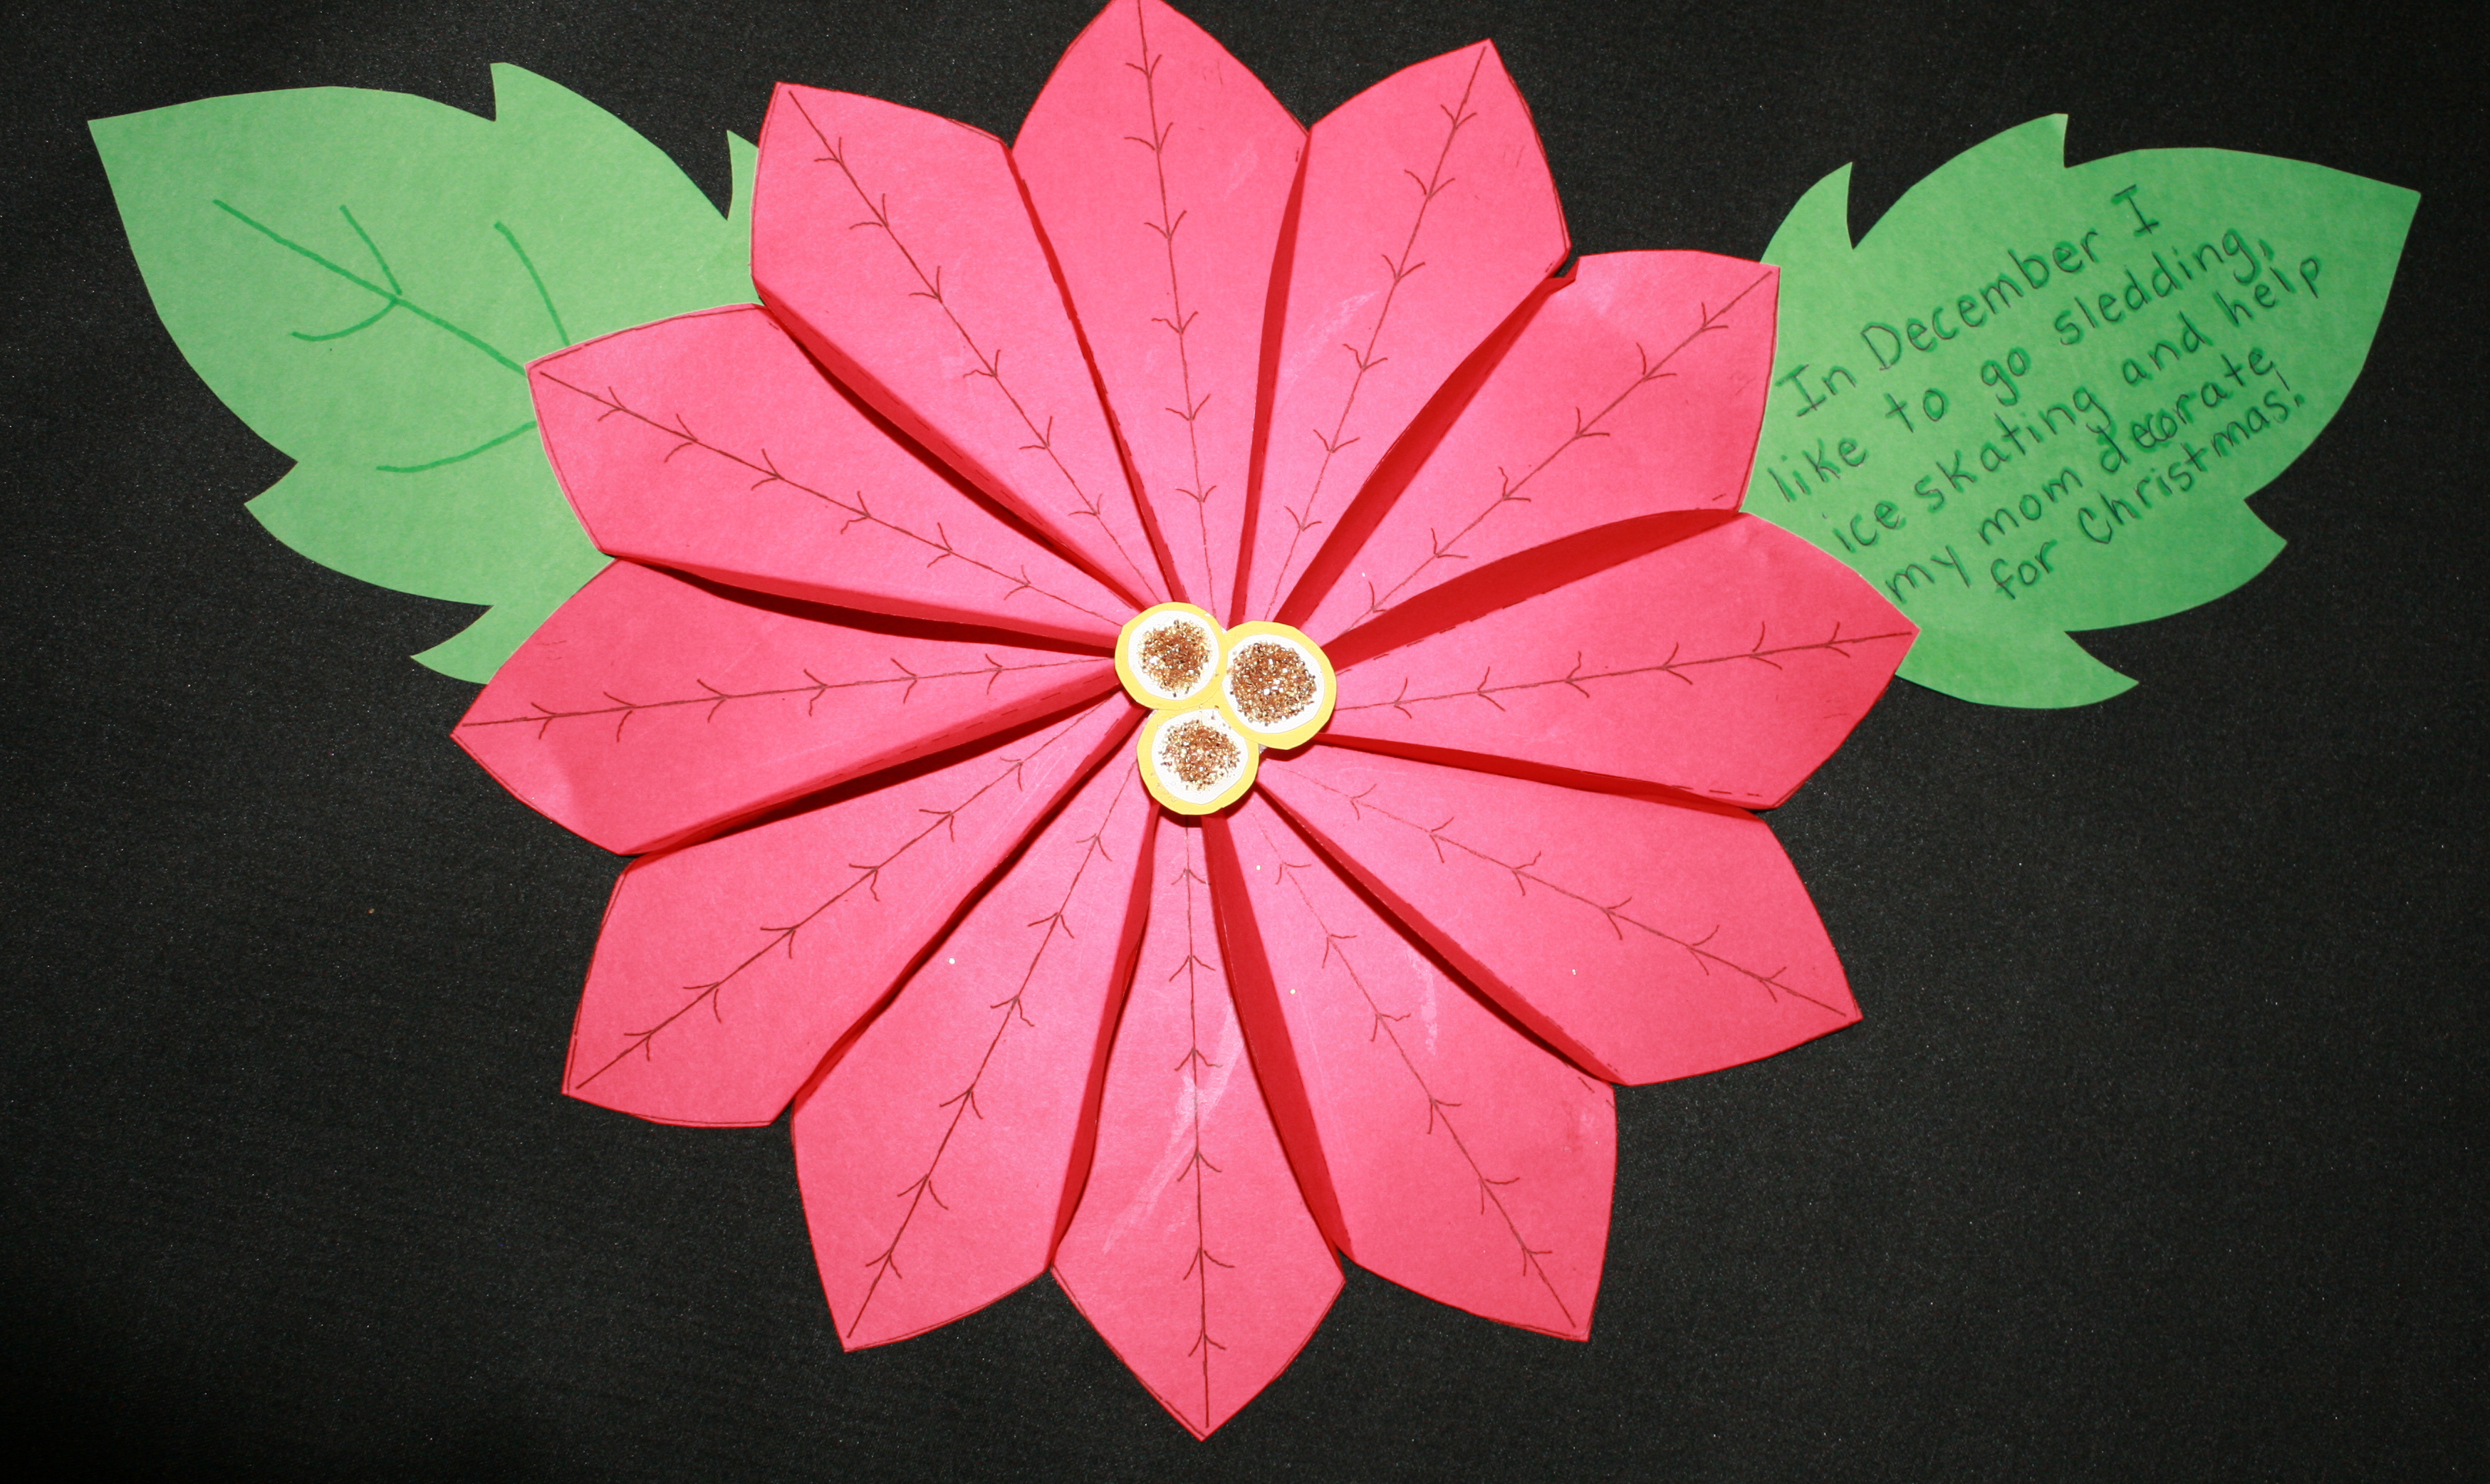 December bulletin boards, December bulletin board ideas, winter bulletin boards, poinsettia bulletin board, Mexican bulletin board, writing bulletin board, December writing prompts, winter bulletin boards